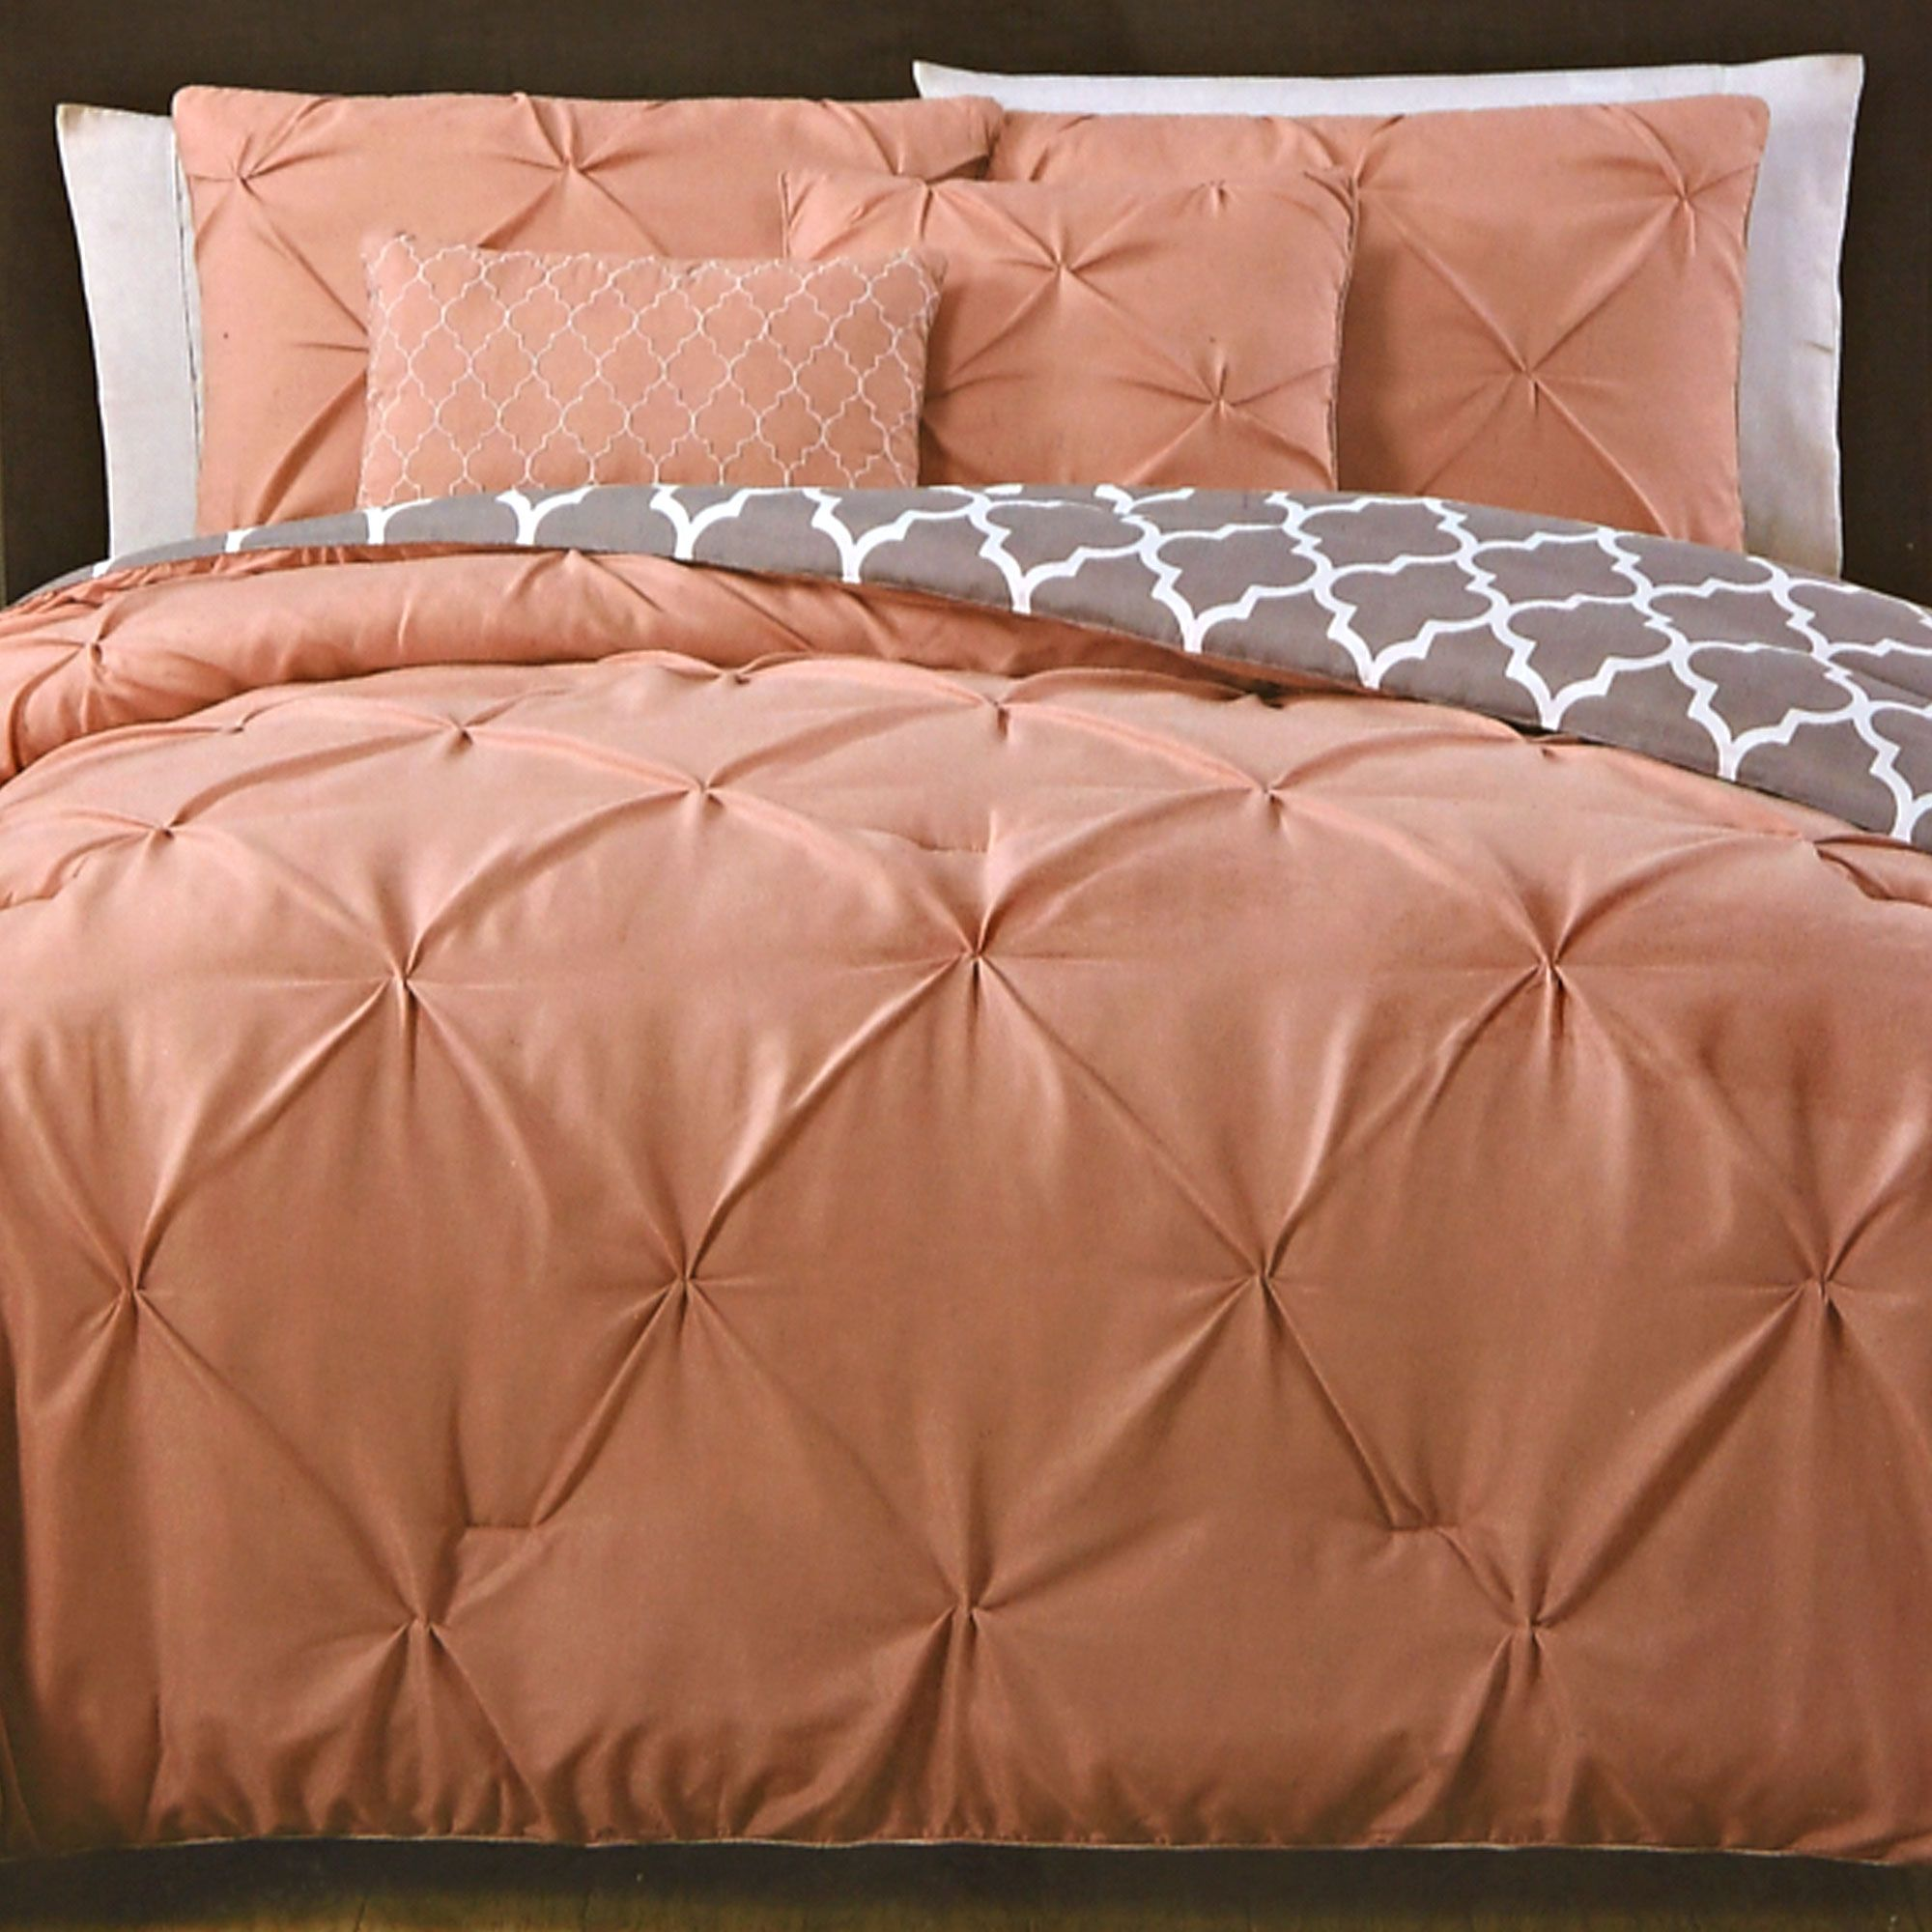 size comforter sets comforters solid cotton natural color bedding double euro